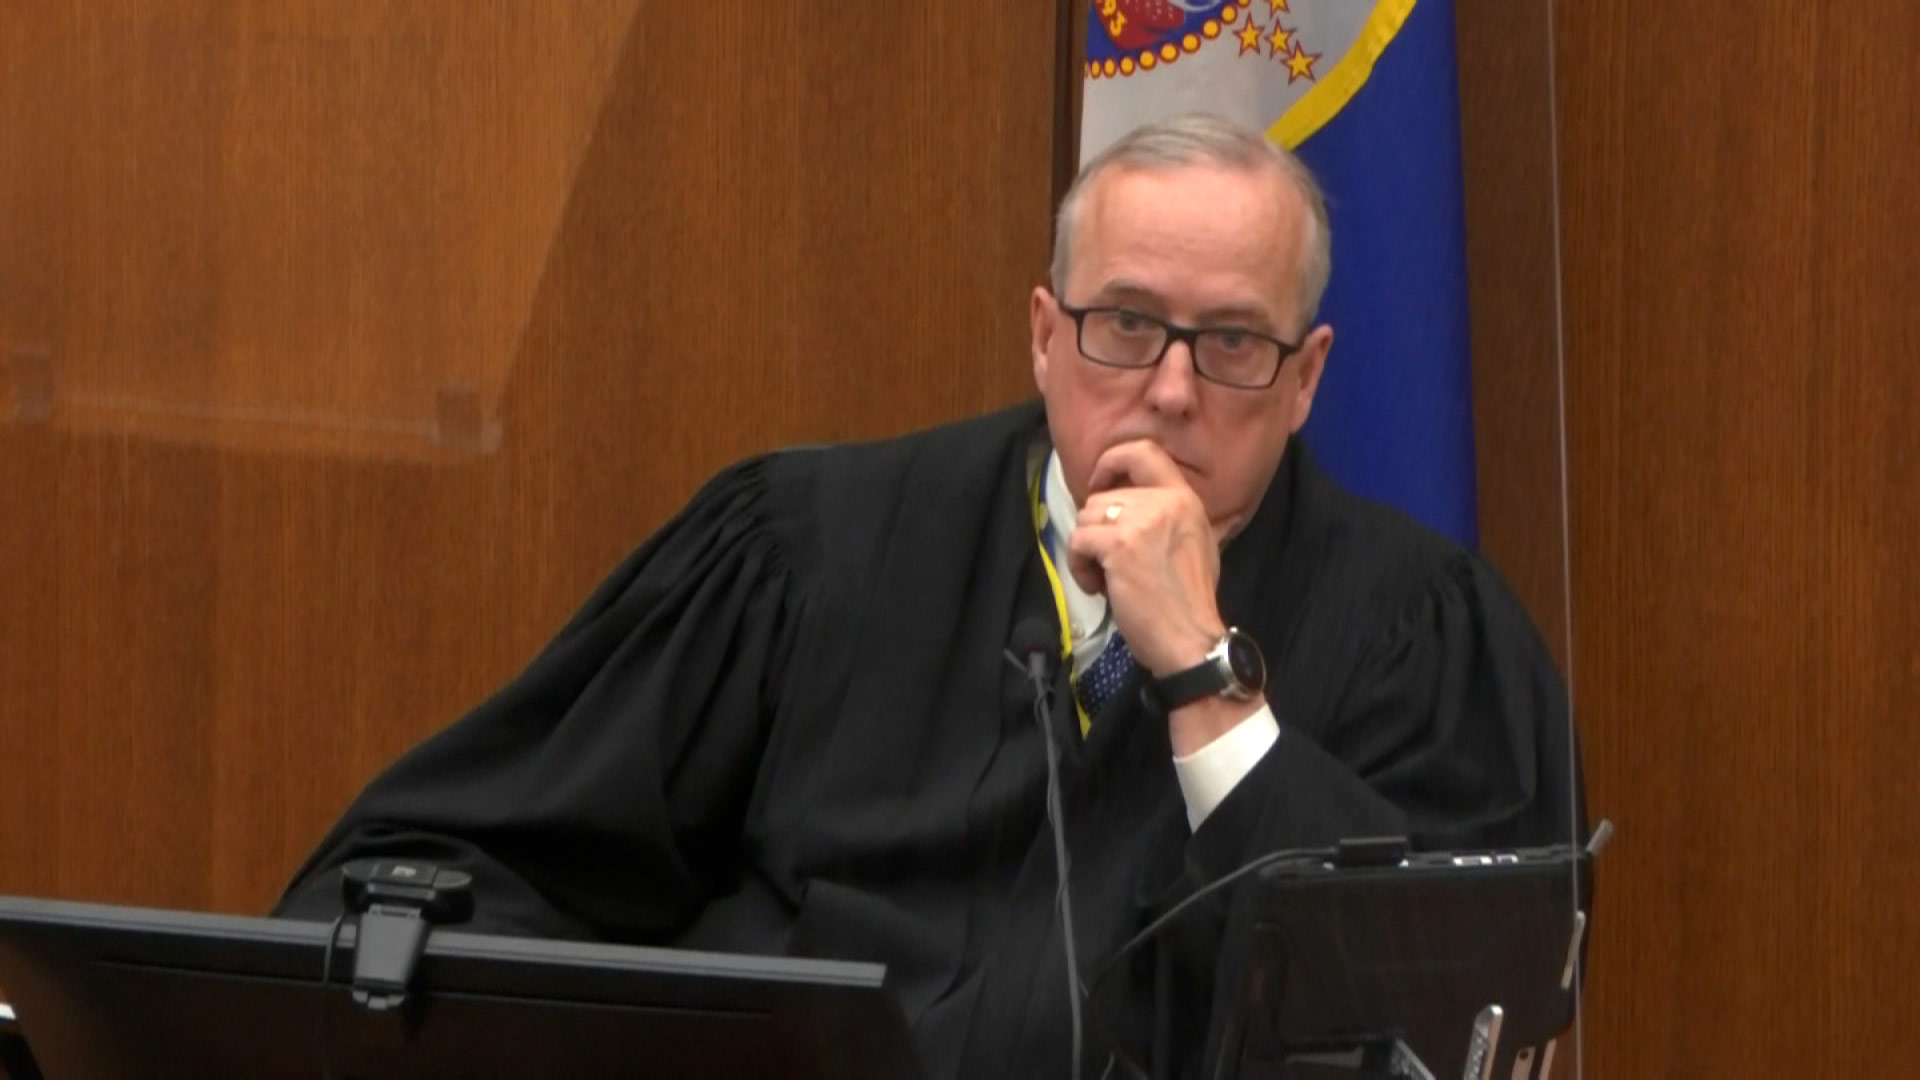 Judge Peter Cahill listens during court proceedings on Monday, April 12.